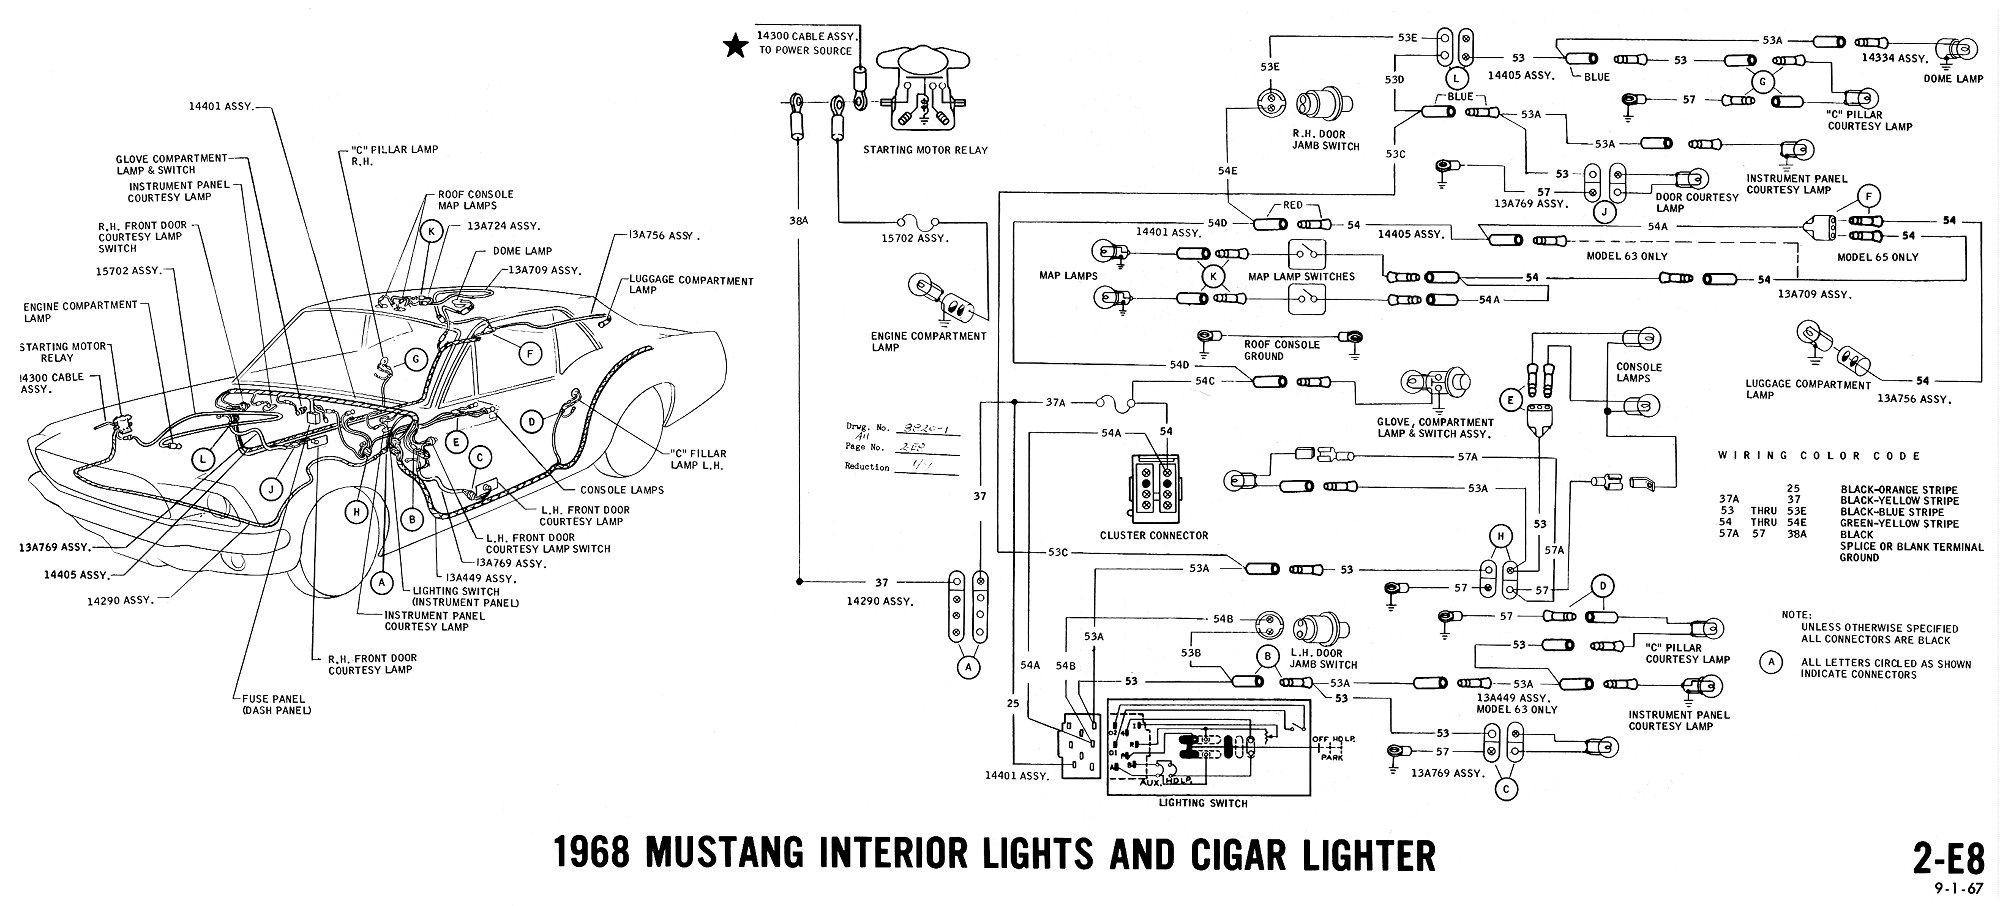 1968 Mustang Instrument Panel Wiring Diagram Opinions About 1967 And Vacuum Diagrams Average Joe Restoration Evolving Software Rh Peterfranza Com 1965 Ignition Switch